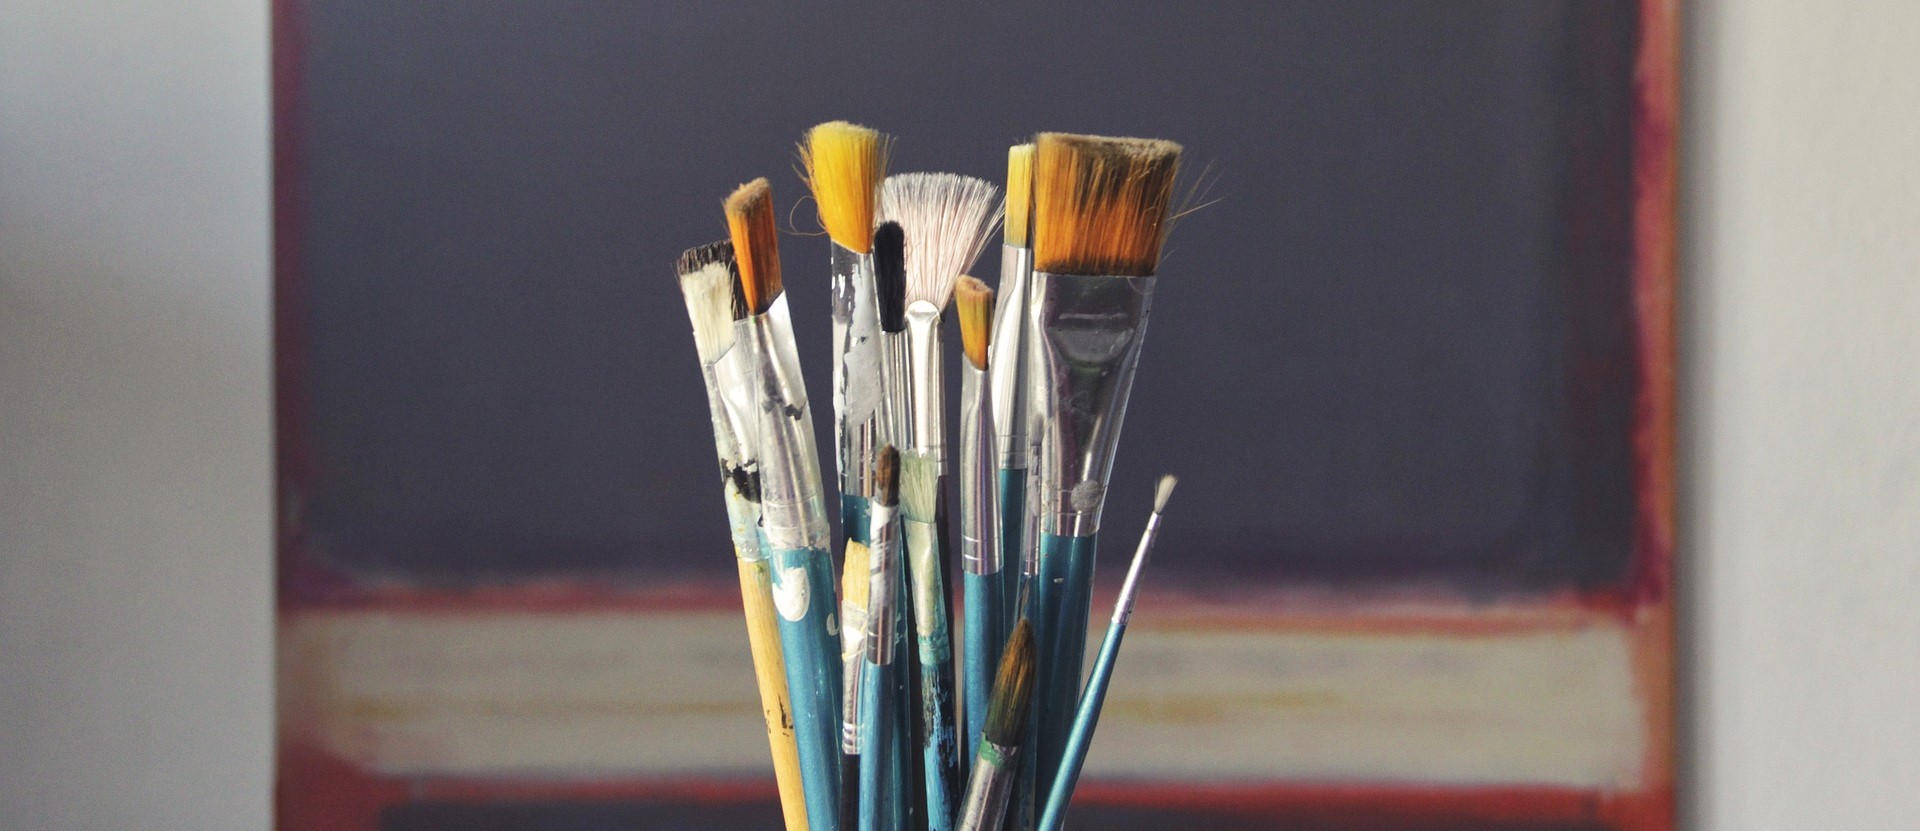 Brushes & Brews - Paint Your Pint!